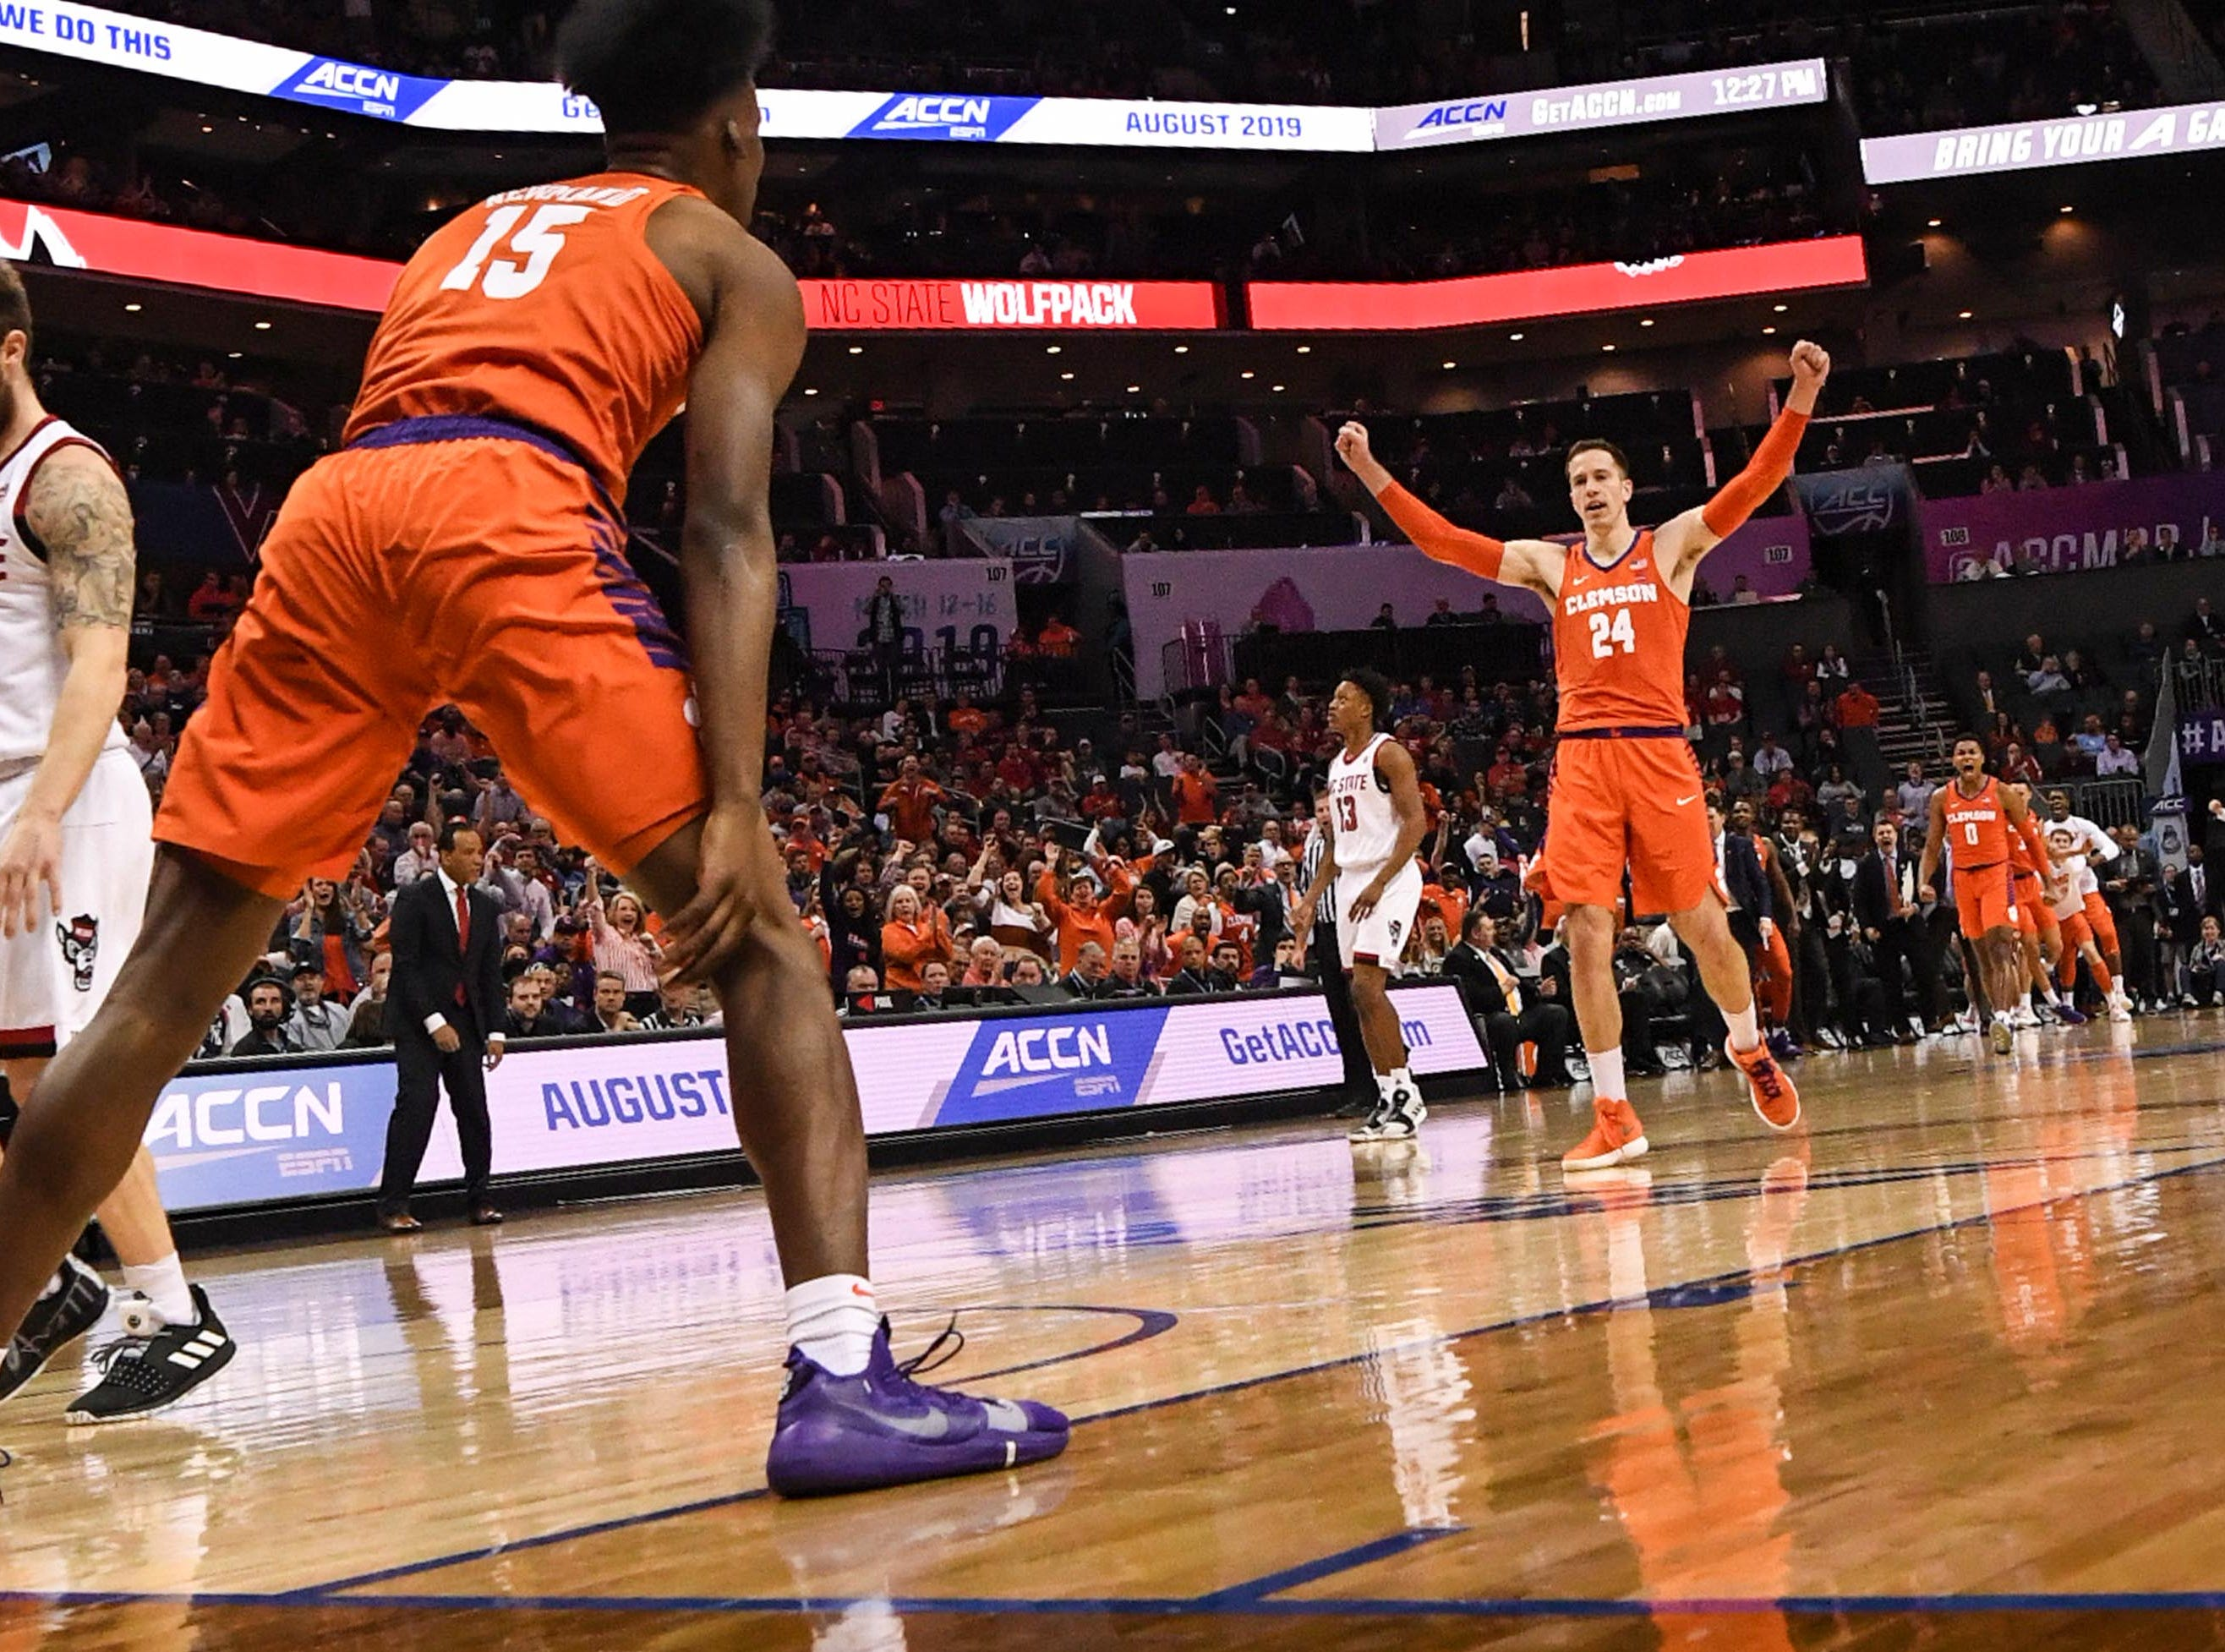 Clemson forward David Skara (24), right, celebrates after forward John Newman (15) dunked against N.C. State during the first half at the Spectrum Center in Charlotte, N.C. Tuesday, March 12, 2019.